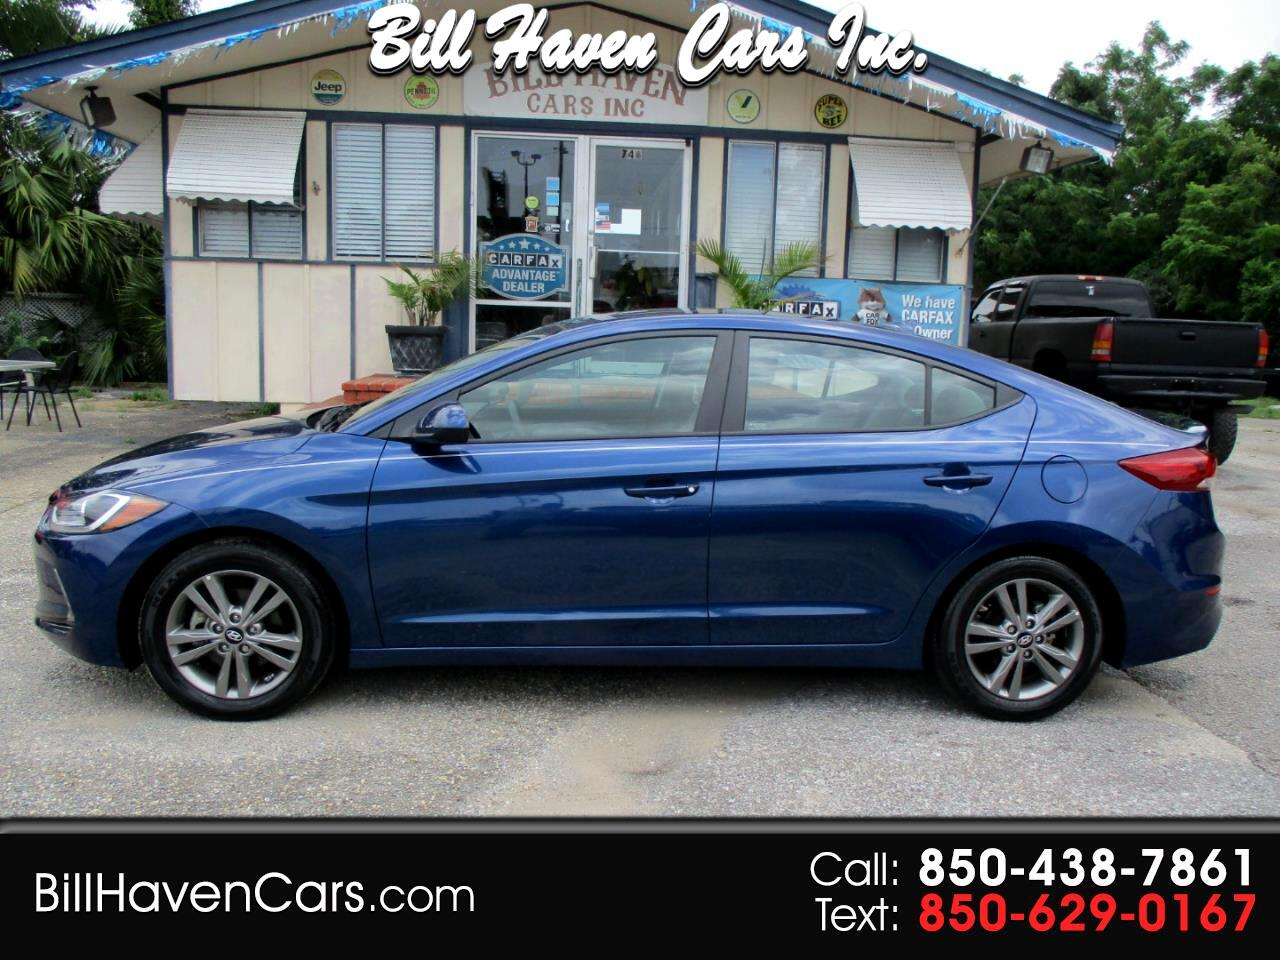 2018 Hyundai Elantra Value Edition 2.0L Auto (Alabama)